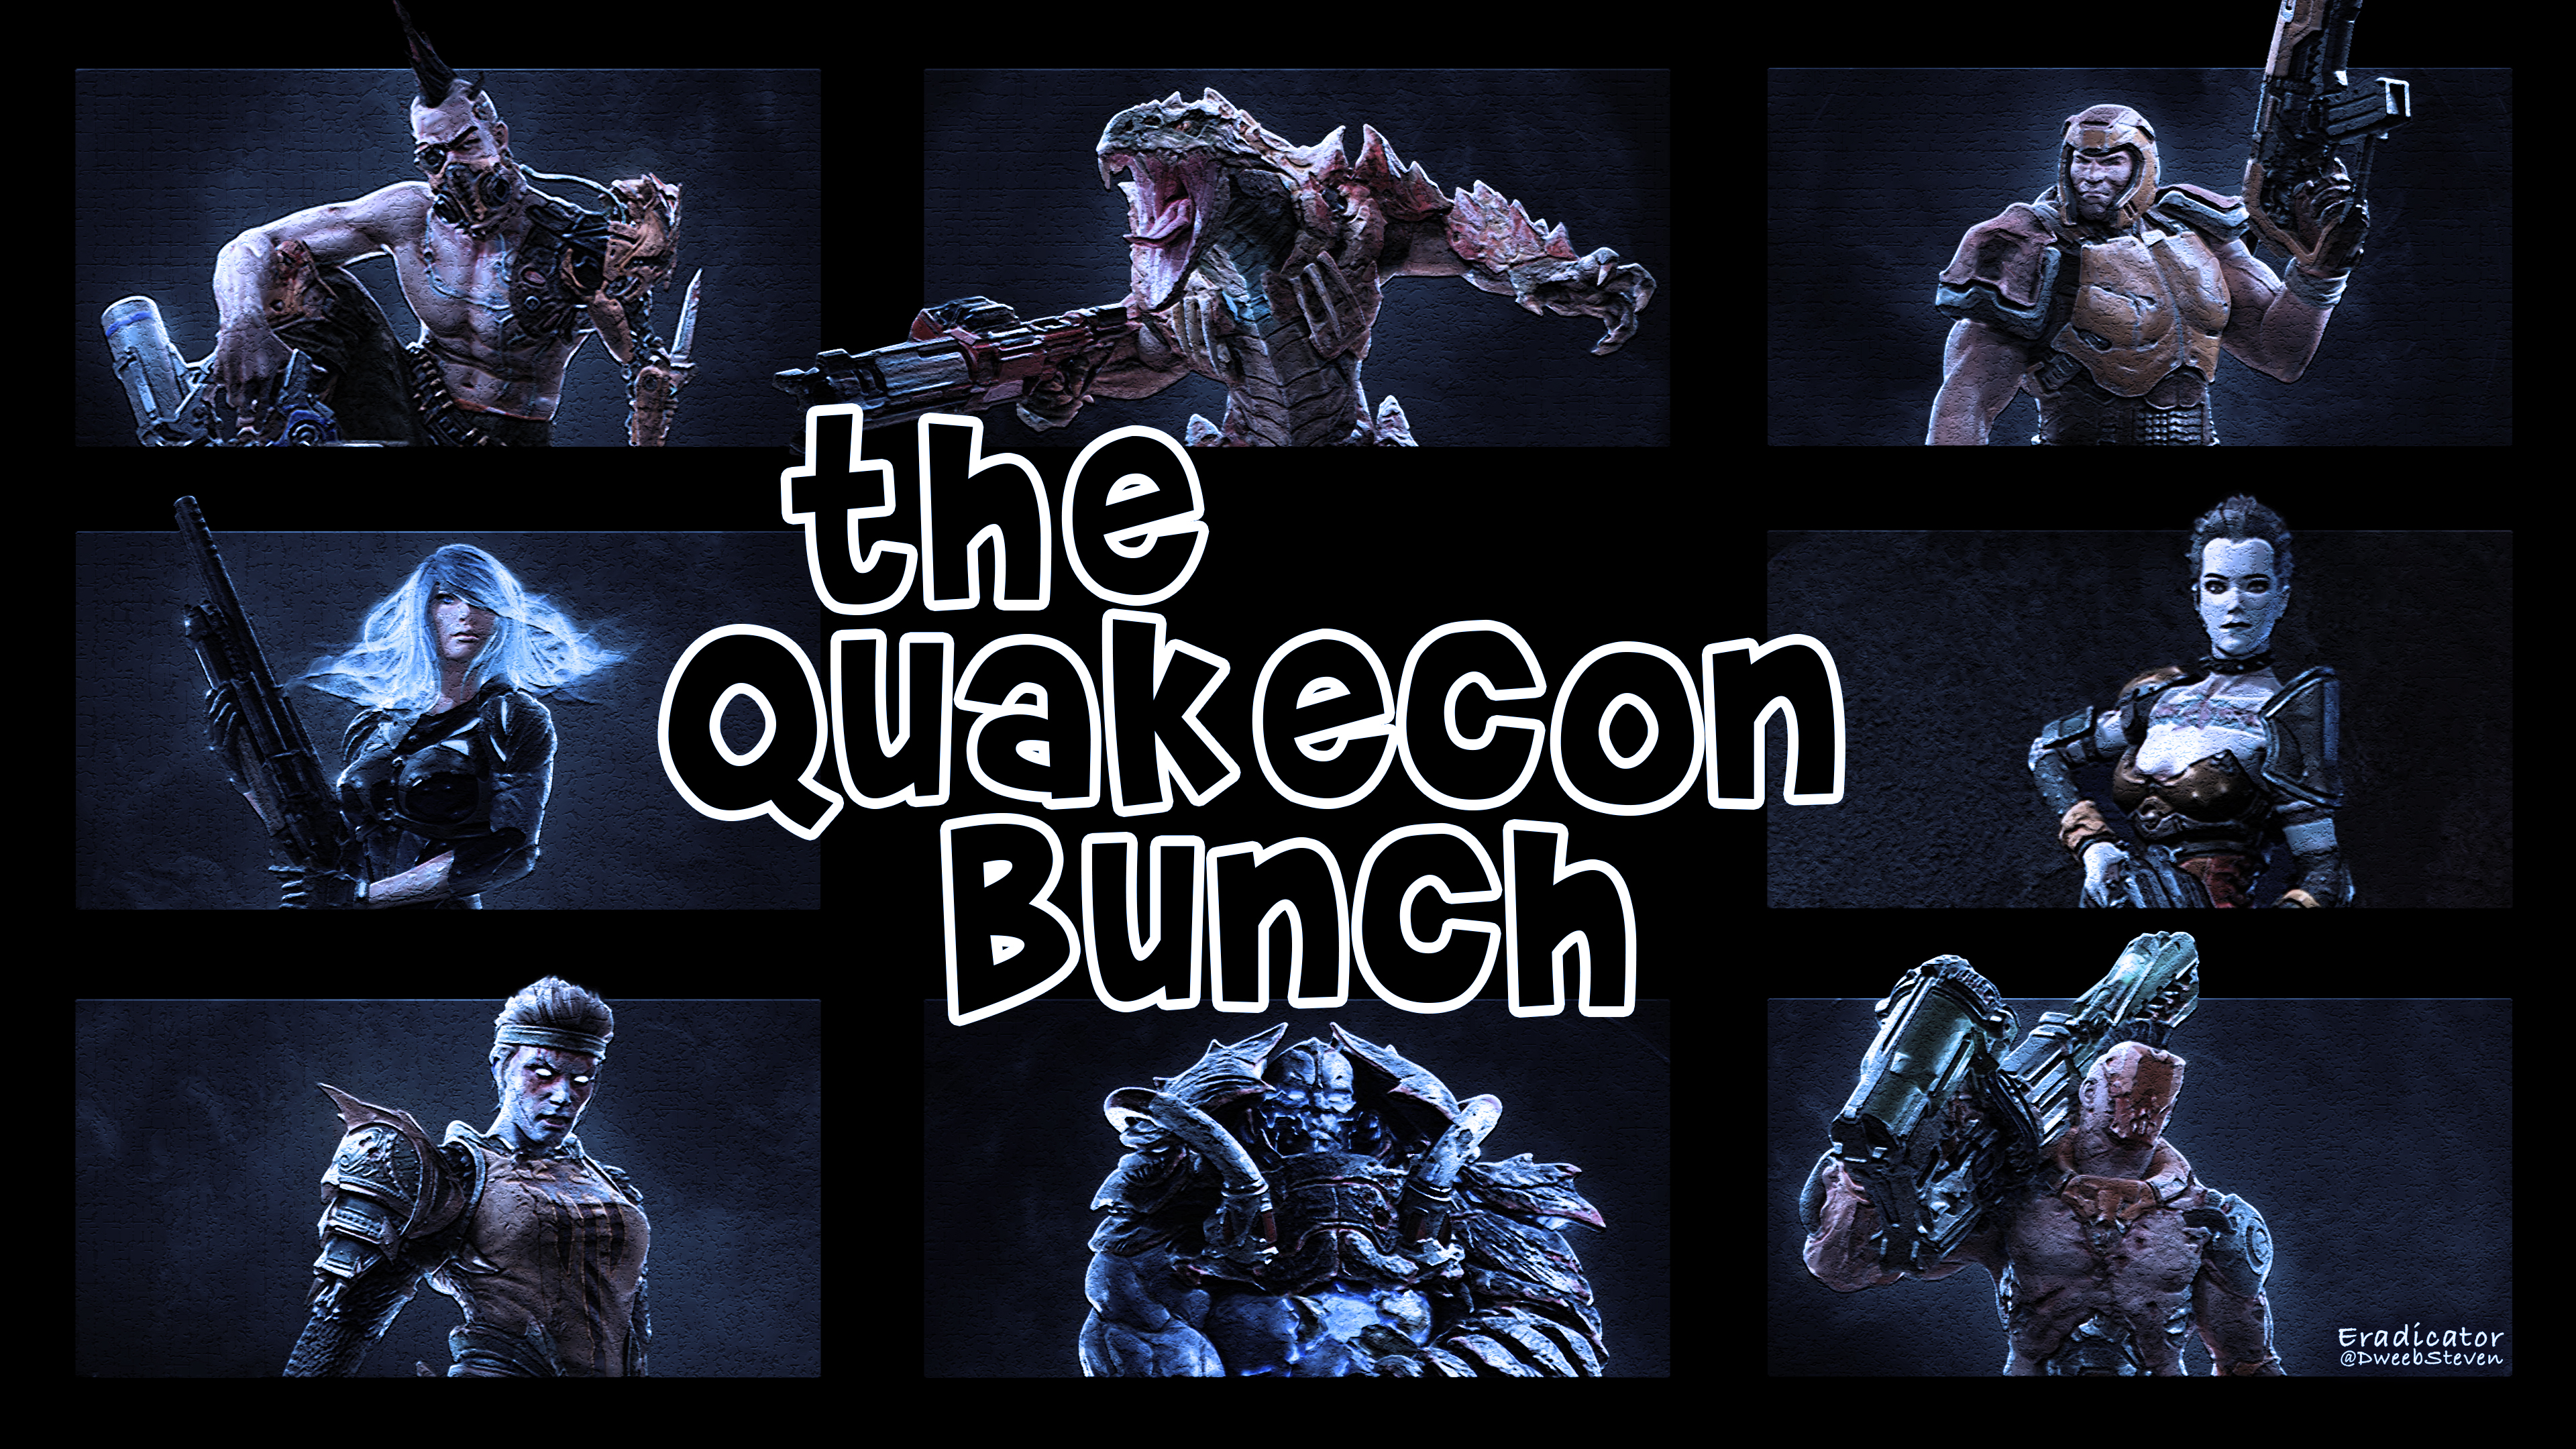 Quakecon Bunch